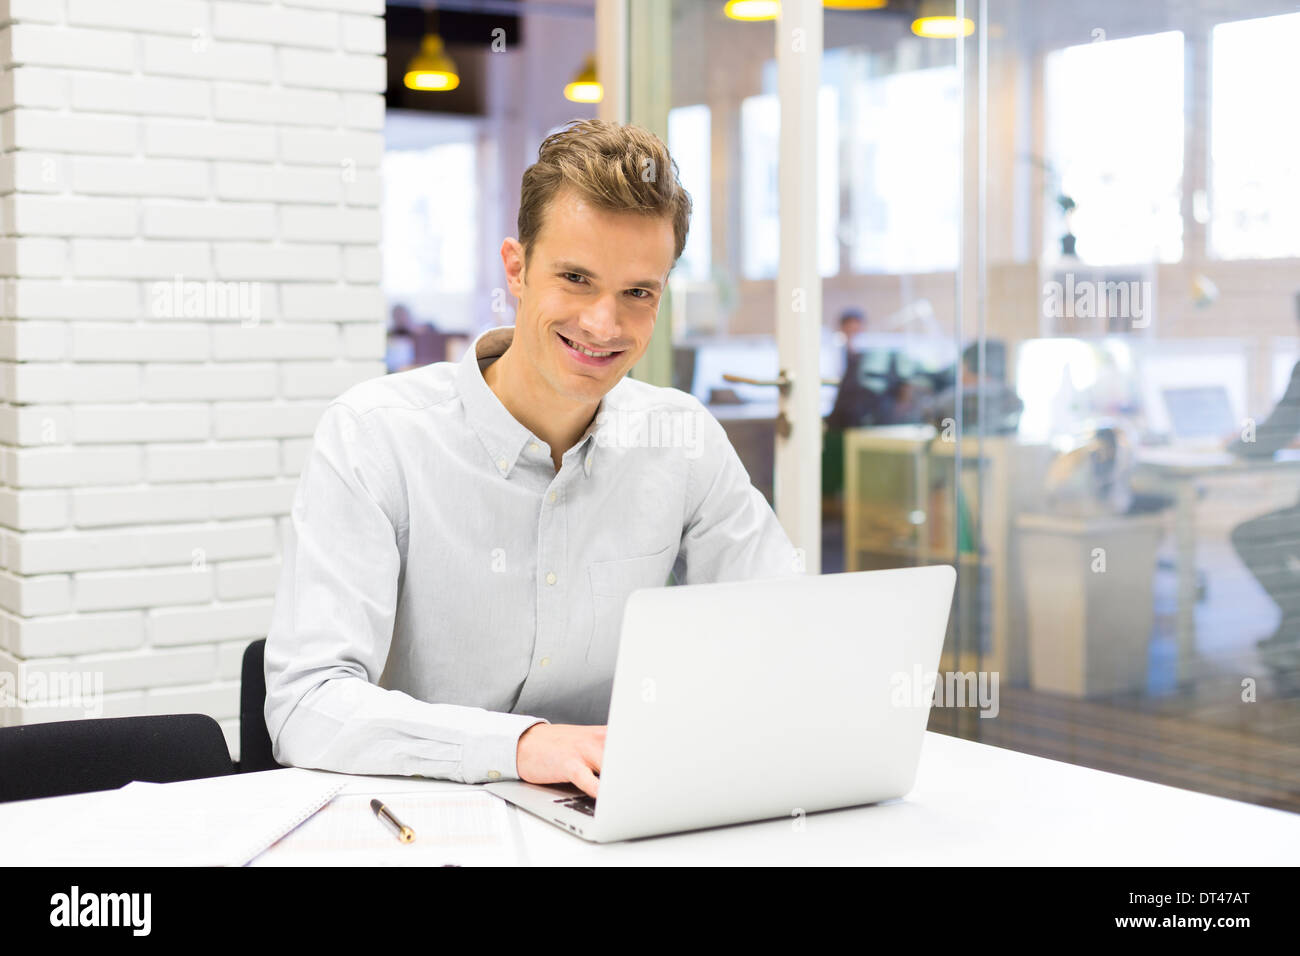 Male business computer desk looking camera - Stock Image